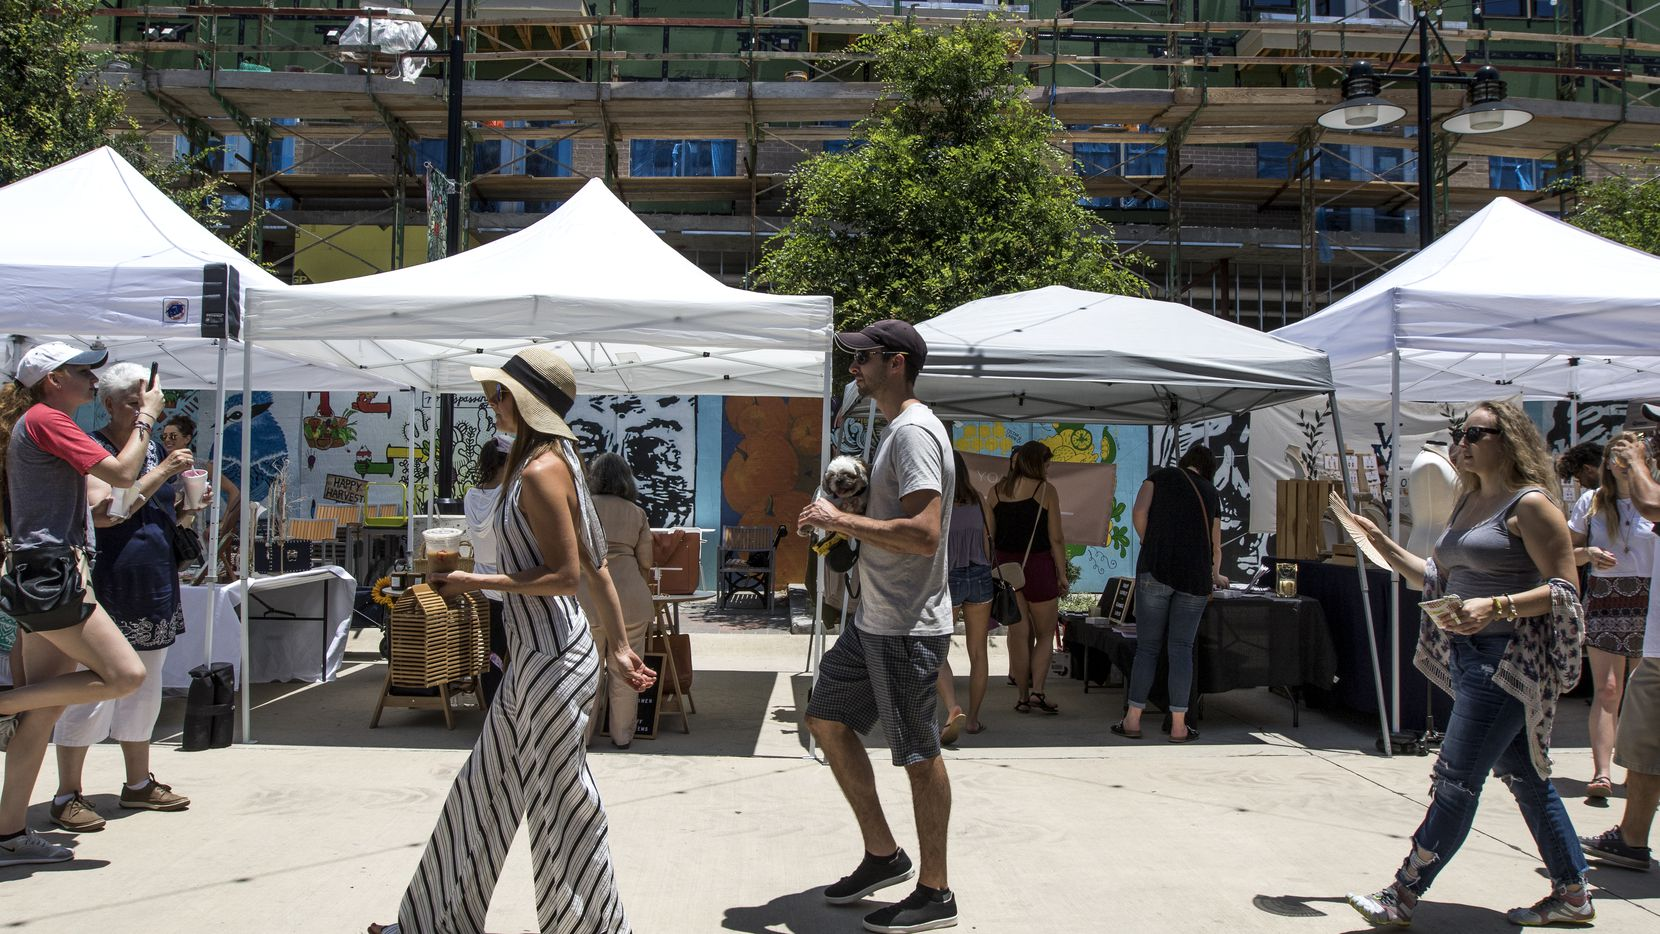 People walk through the pop-up Boho Market at Dallas Farmers Market in Dallas on June 9, 2018. (Carly Geraci/The Dallas Morning News)